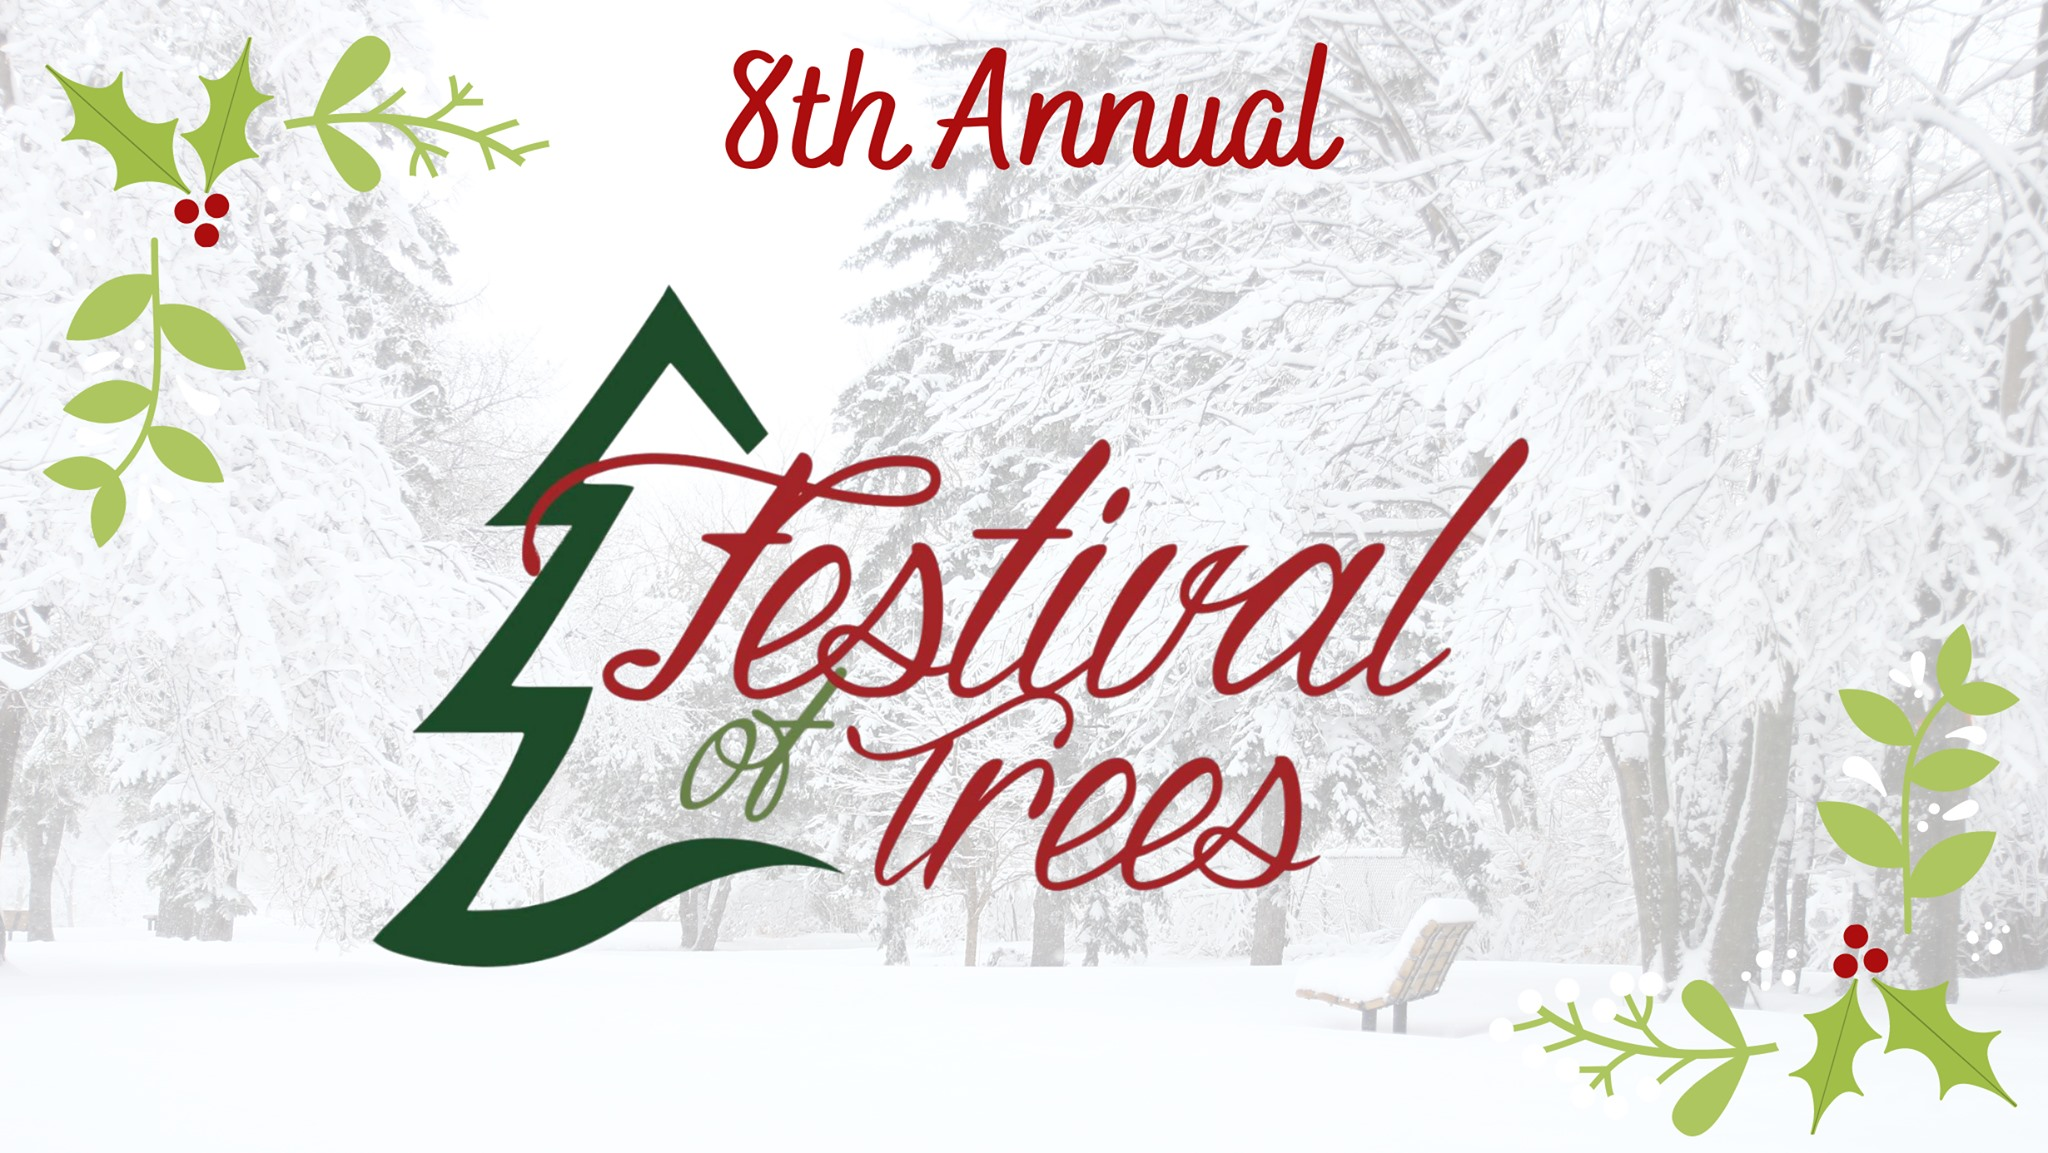 8th Annual Festival of Trees